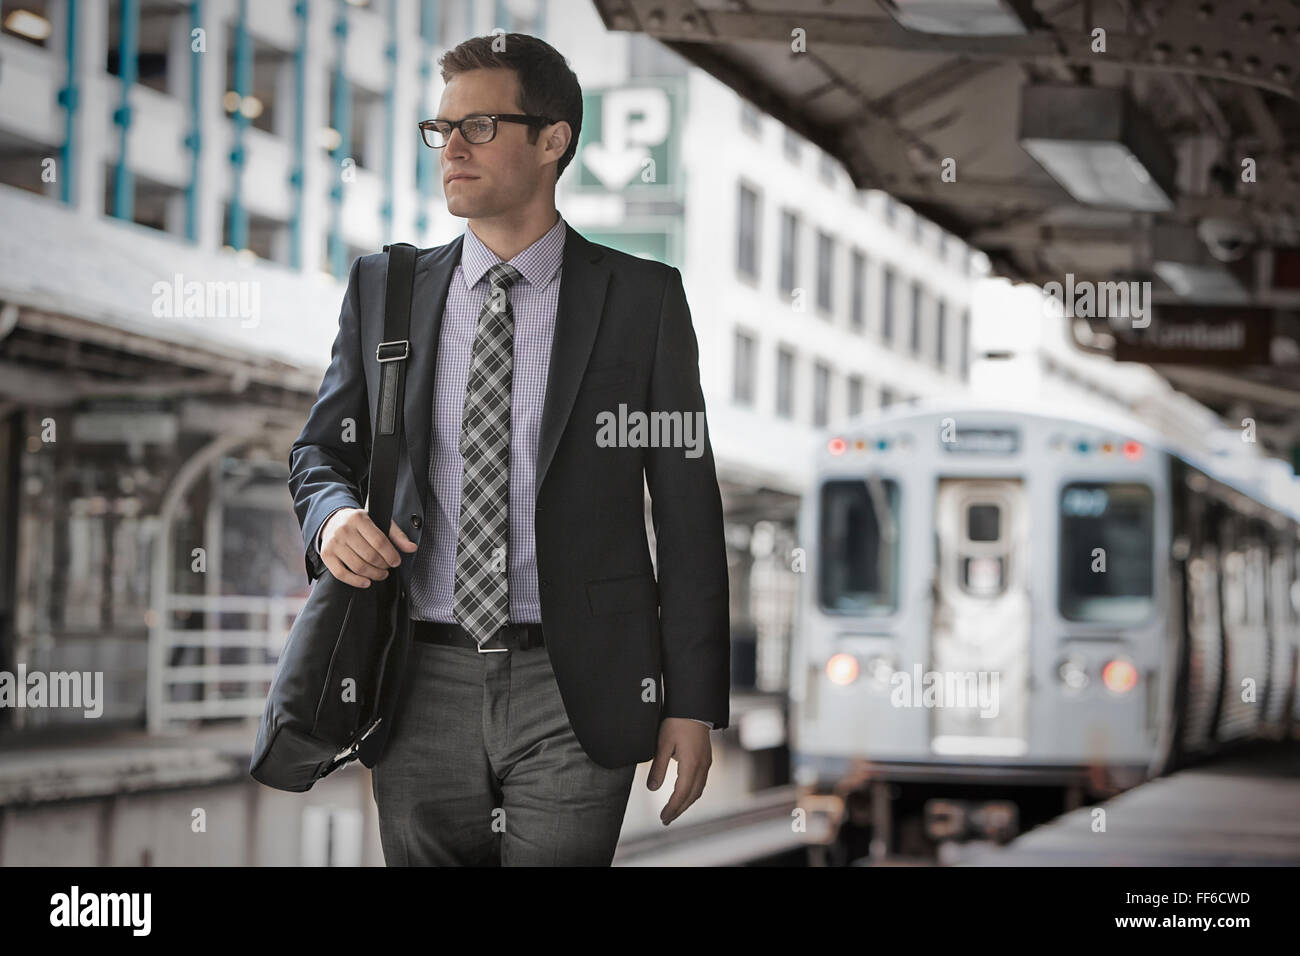 A working day. Businessman in a work suit and tie on a railway station platform. - Stock Image